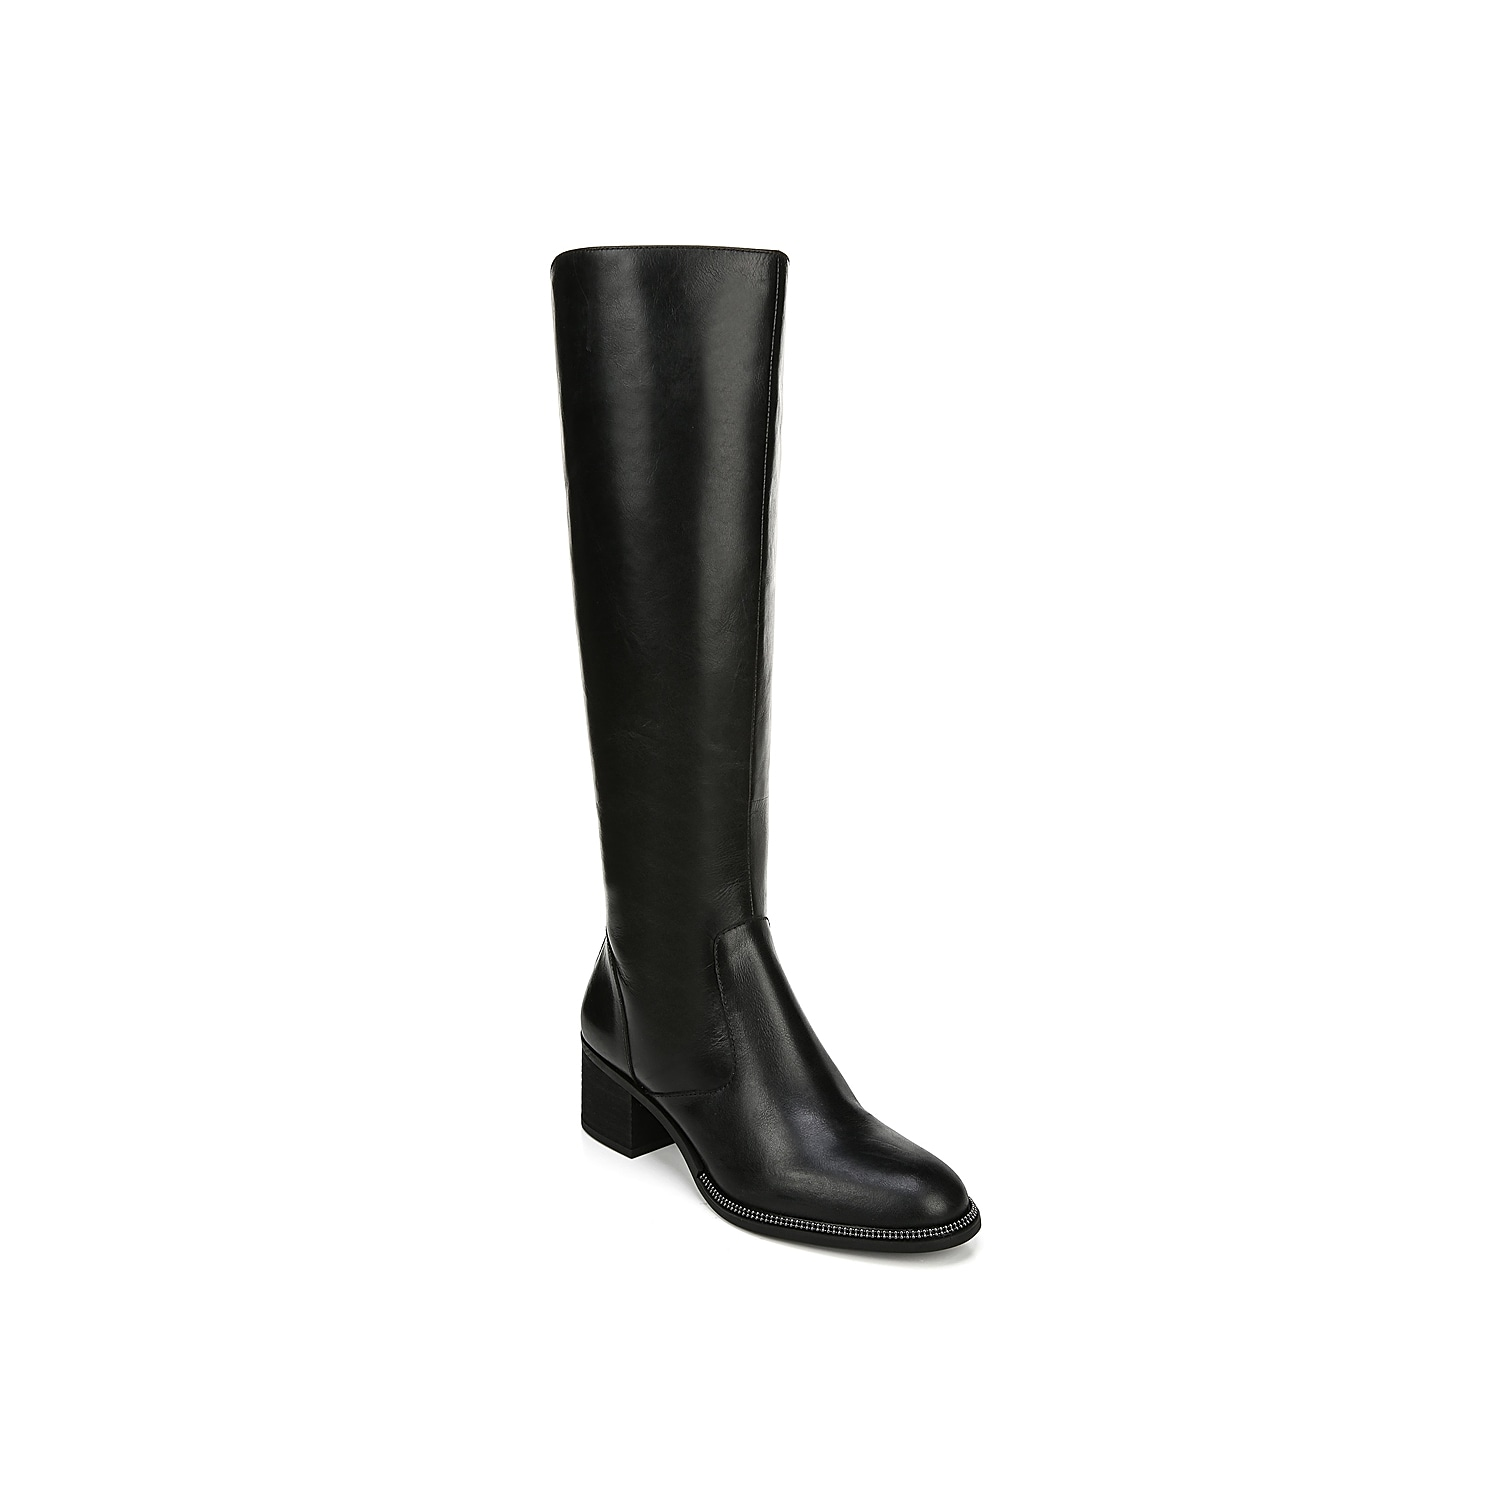 The Lauralei boot from Franco Sarto will be the perfect start to a fab shoe collection. This leather pair is fashioned with a stovepipe silhouette and a chunky heel for the perfect amount of height! Click here for Boot Measuring Guide.